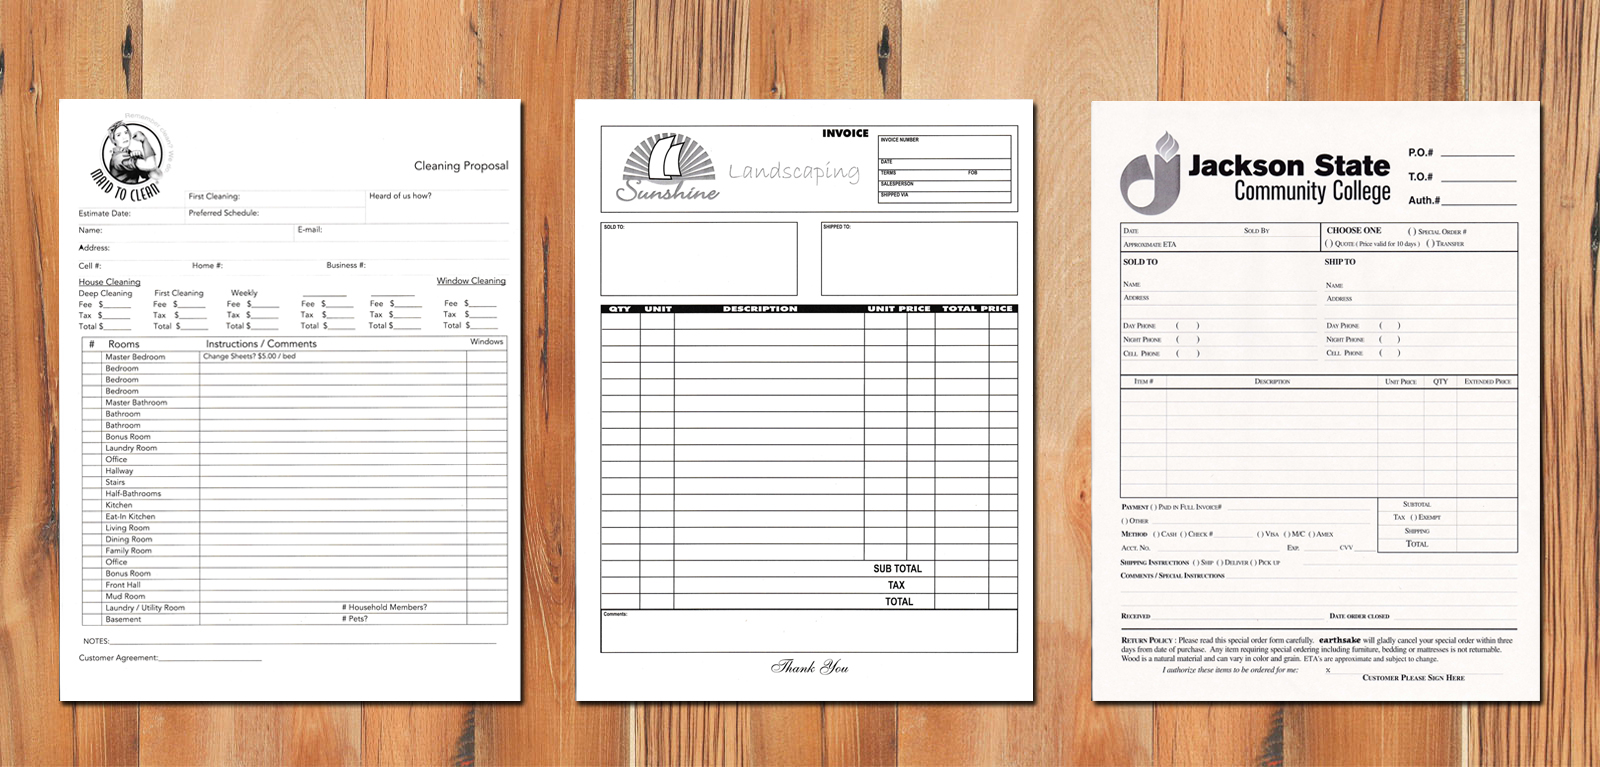 carbonless forms printing, carbonless form printing, landscape forms, order form, registration form, custom carbonless forms